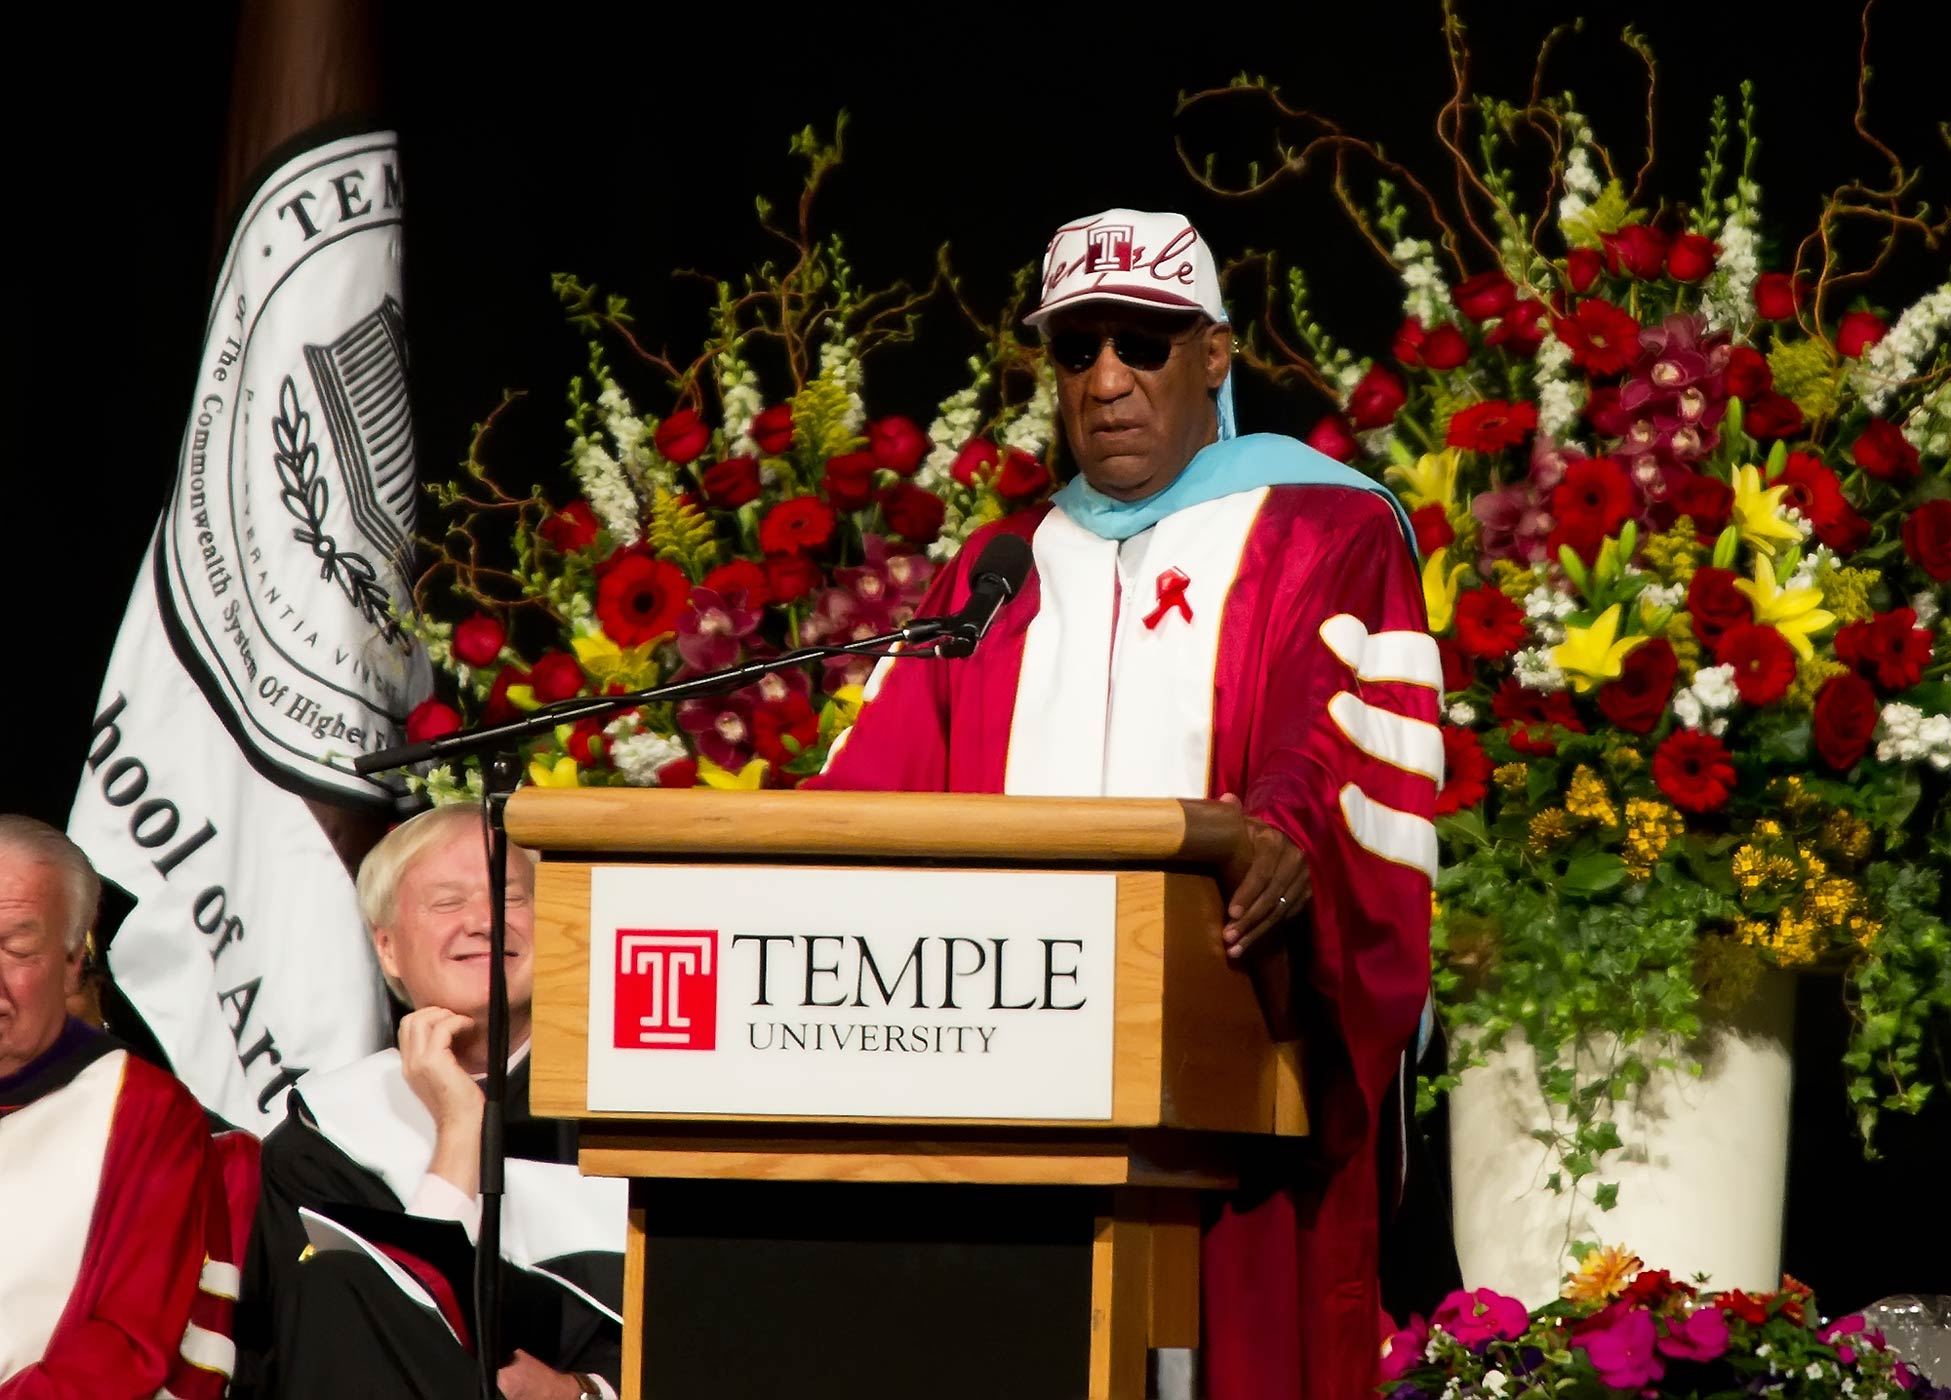 Bill Cosby attends the 2011 Temple University Commencement at the Liacouras Center on May 12, 2011 in Philadelphia, Pa.